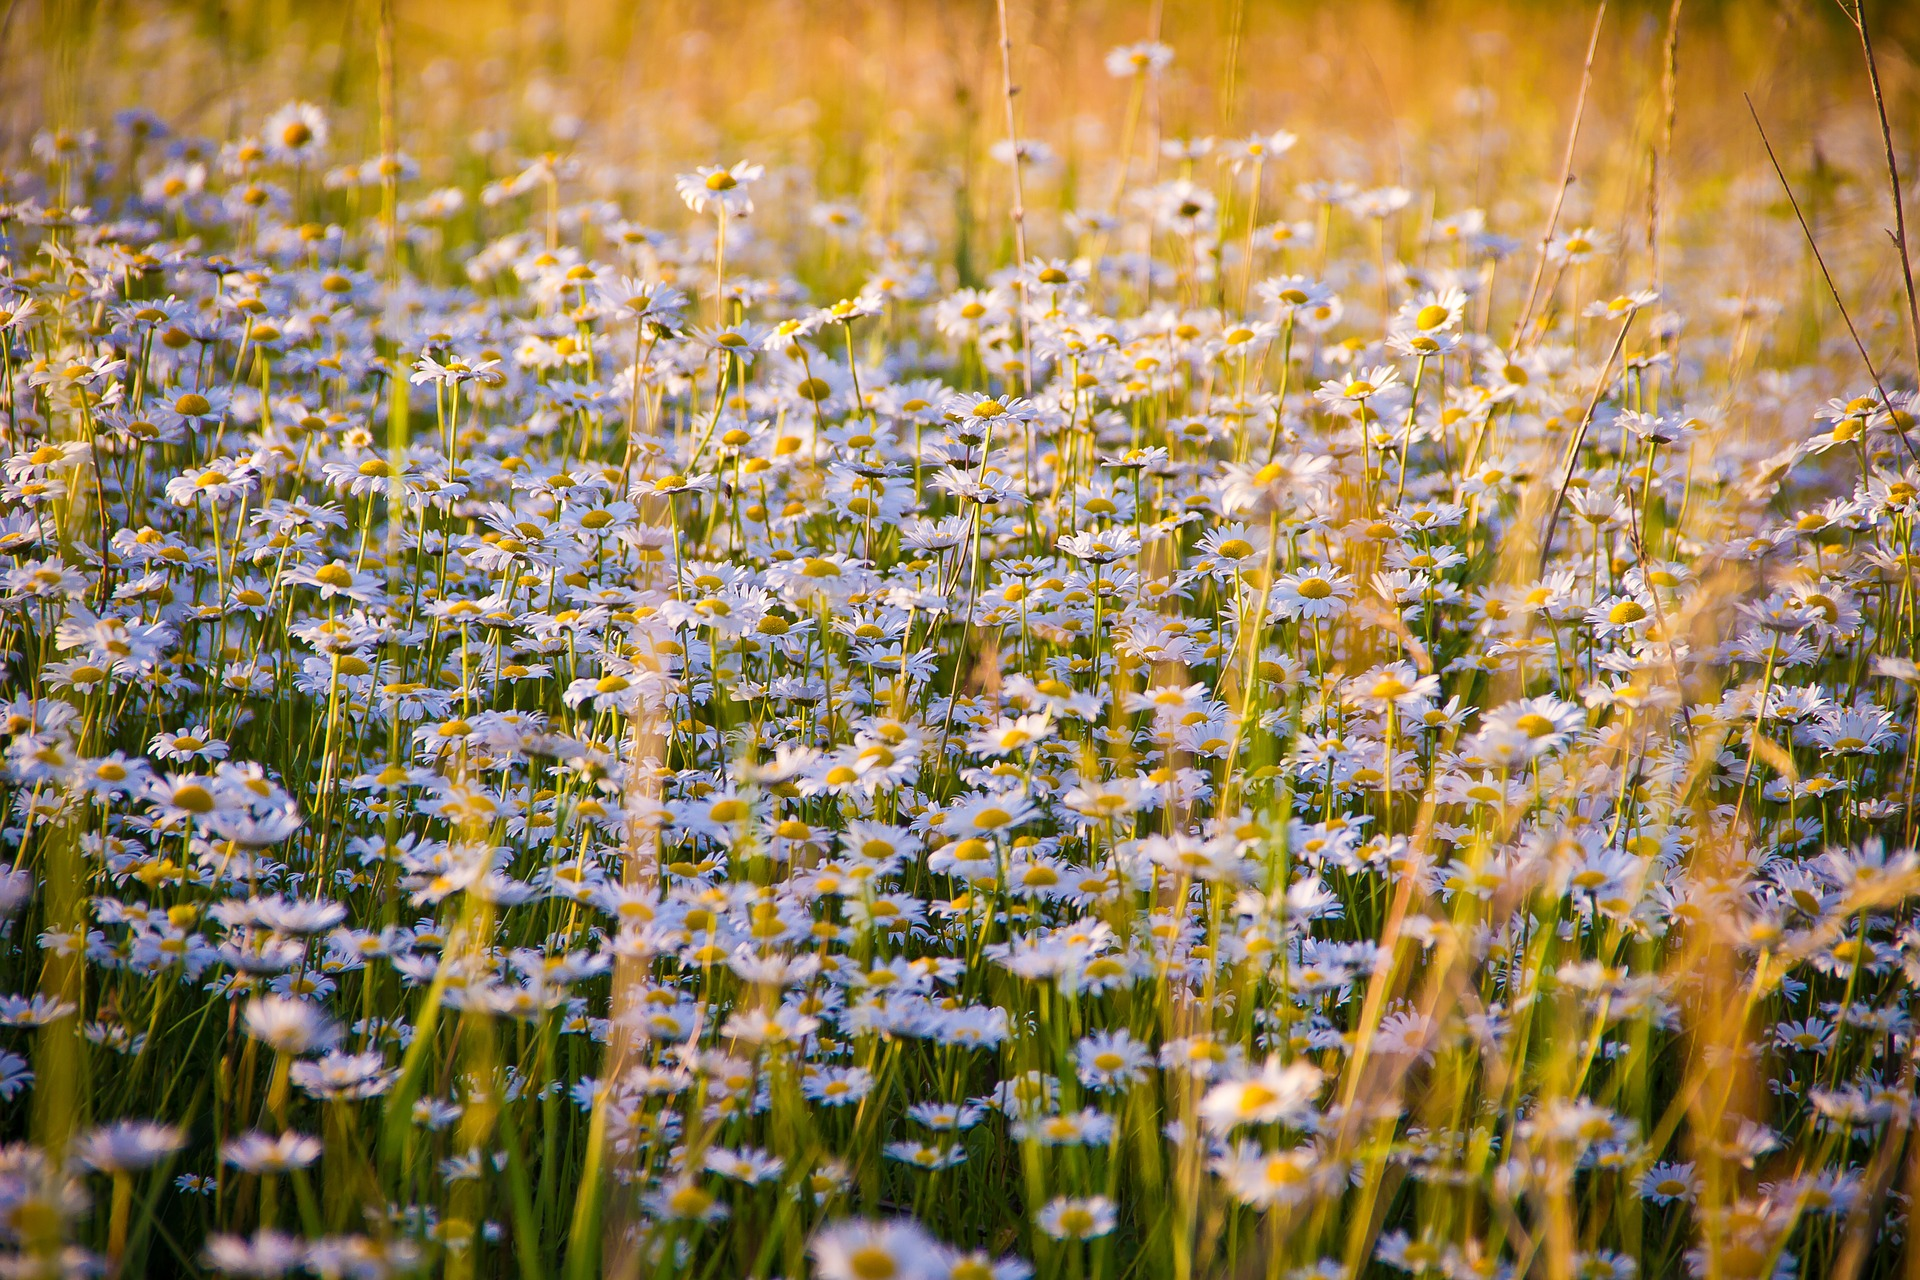 Header images of a field of daisies